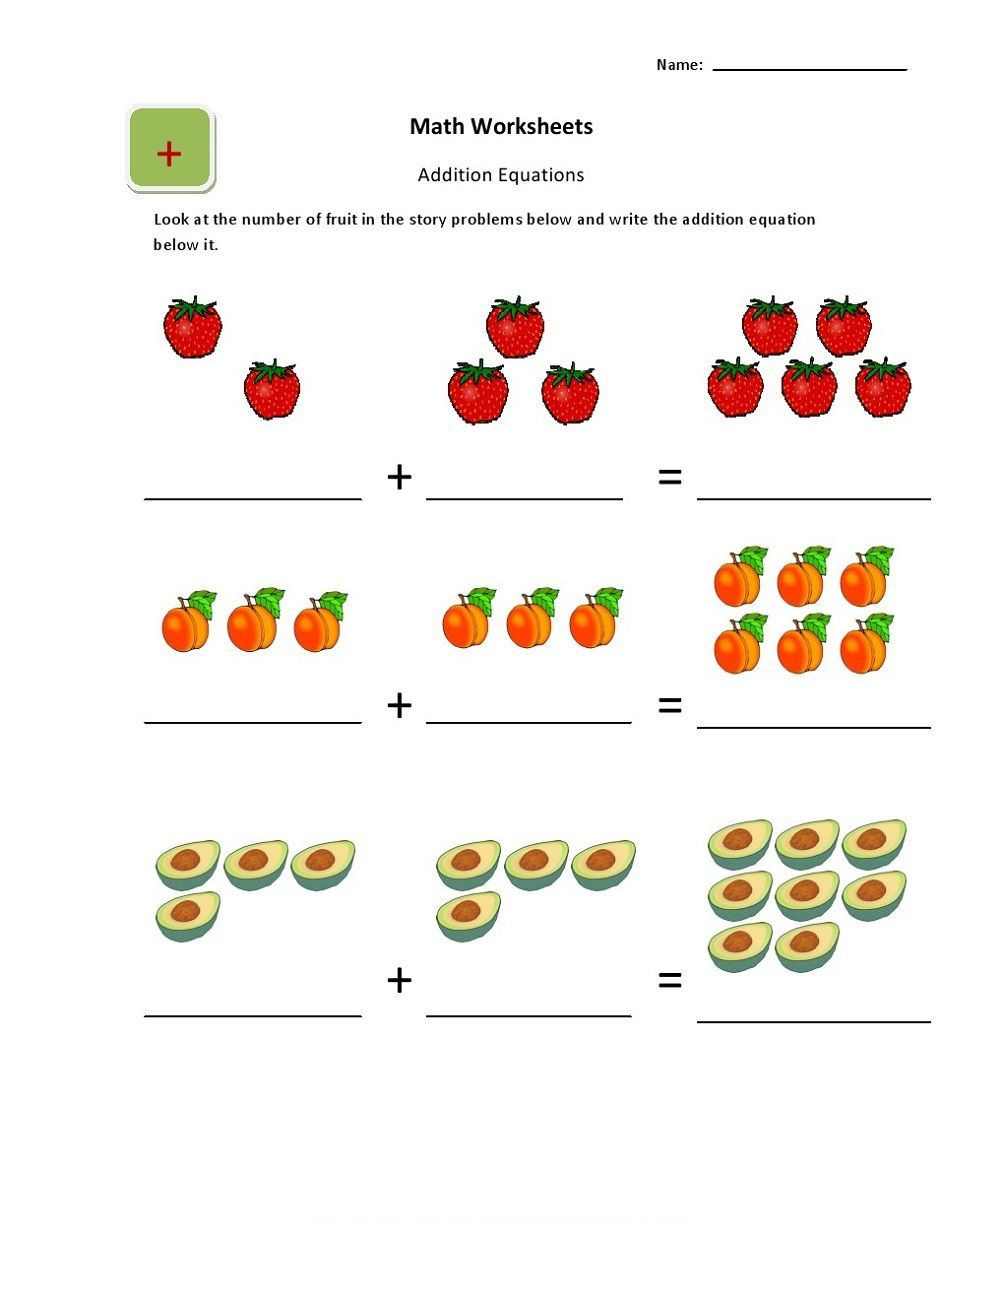 Ukg Maths Addition Worksheets In 2020 Math Addition Worksheets Kindergarten Math Addition Math Worksheets